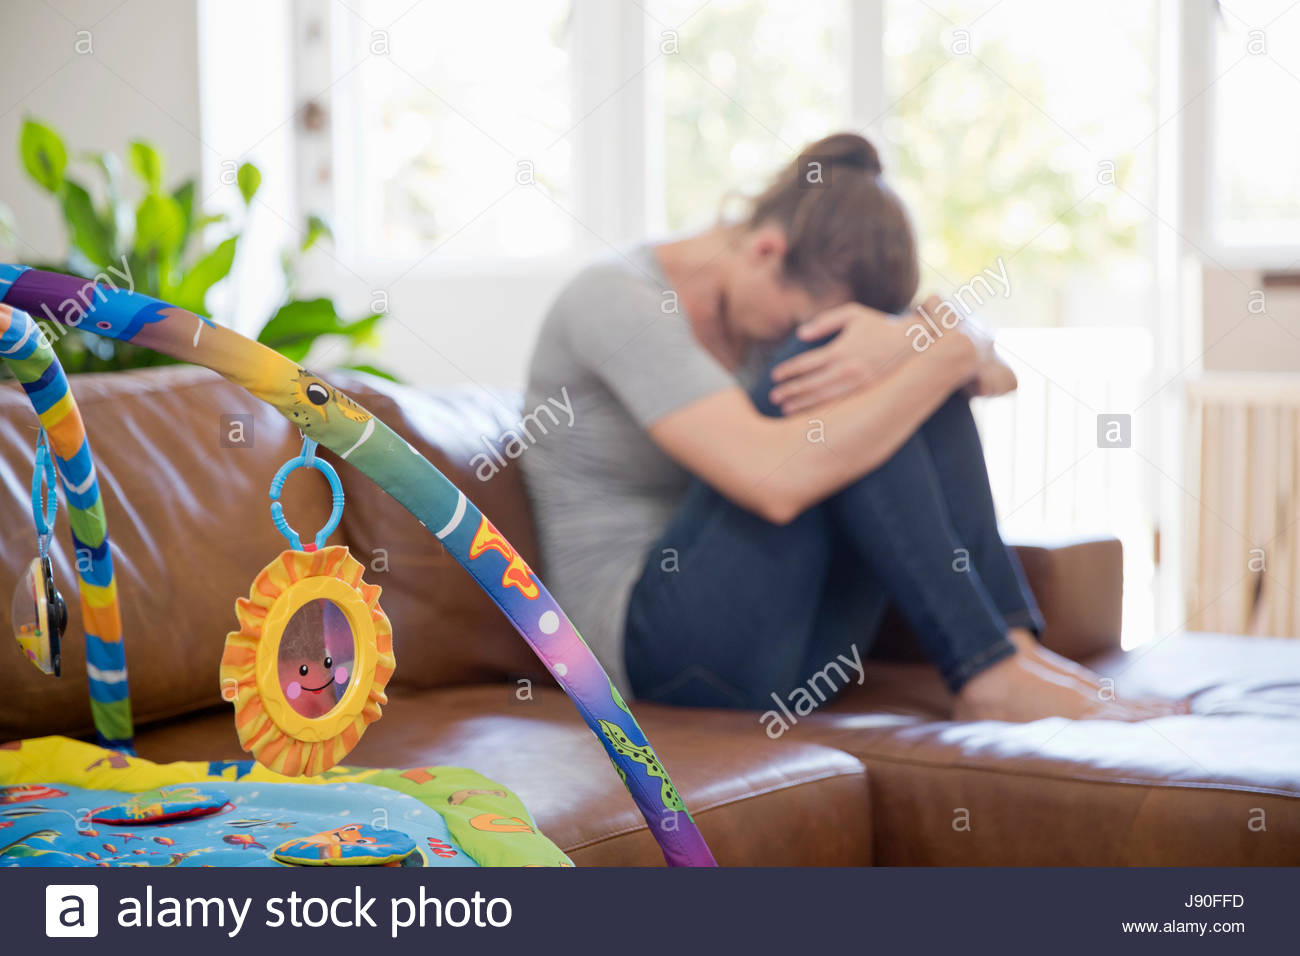 Unhappy Mother Suffering With Post Natal Depression Sits On Sofa - Stock Image